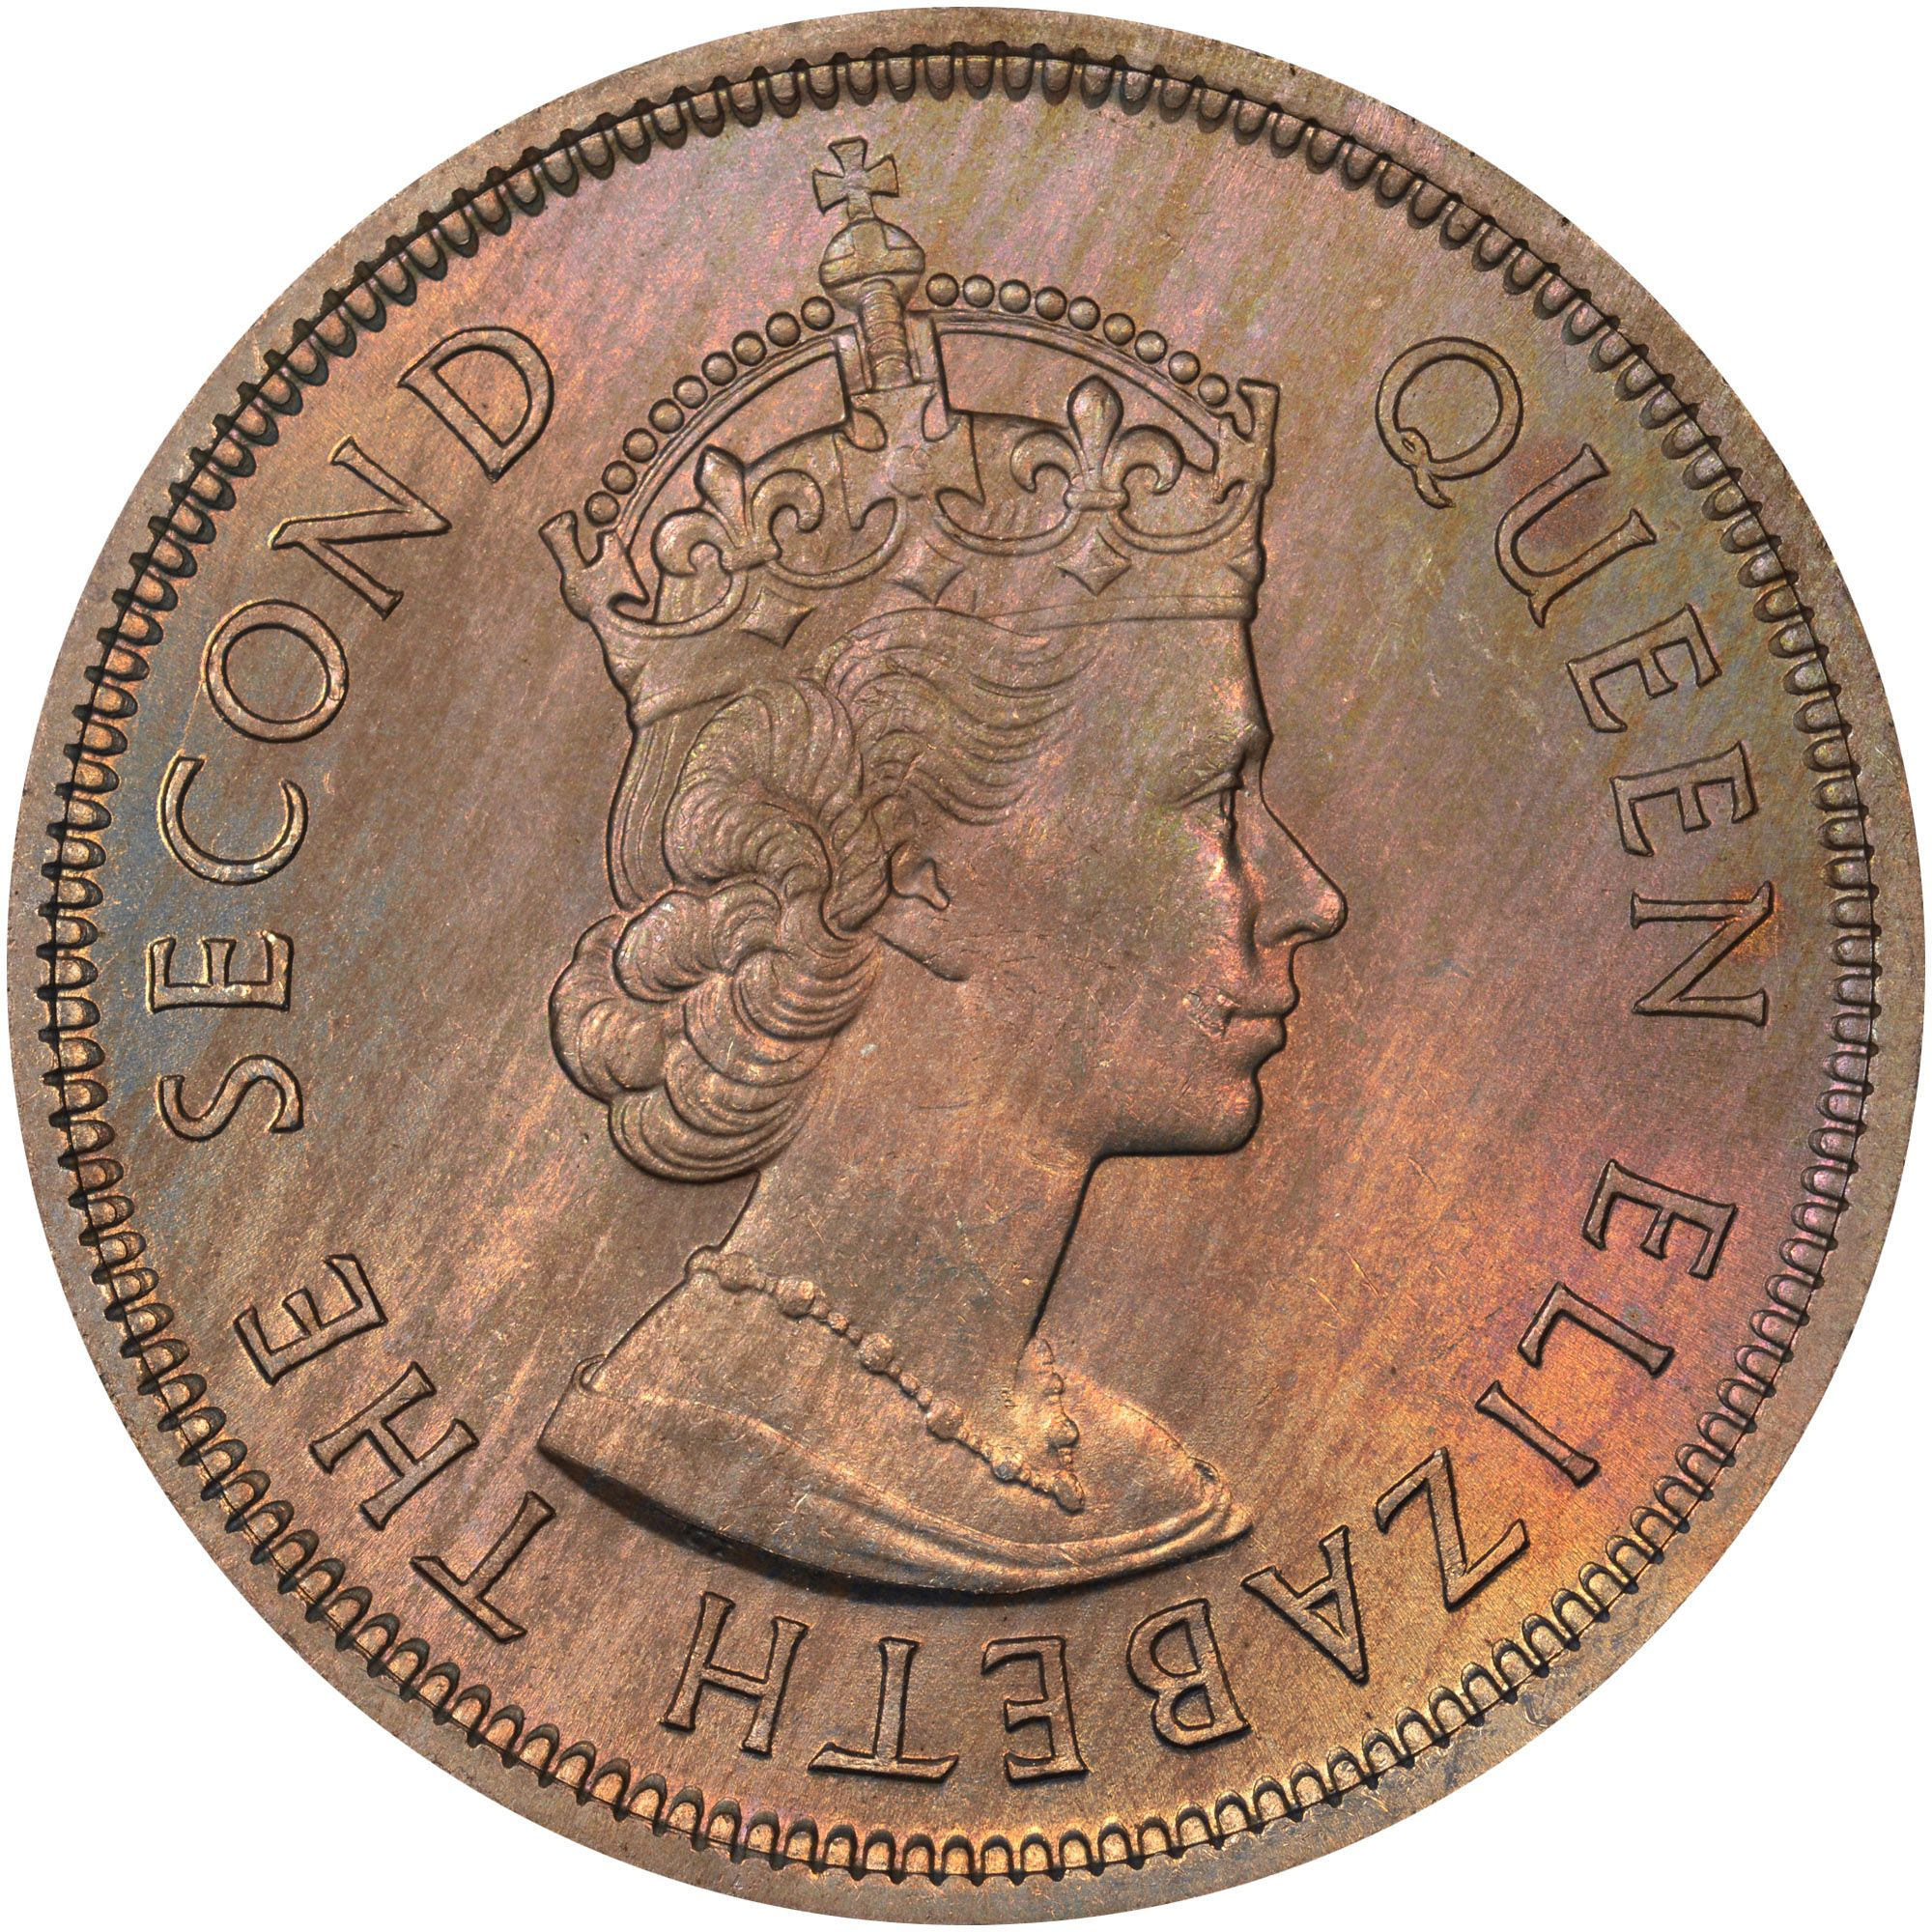 World Coin Price Guide And Values Coin Prices World Coins Rare Coin Values